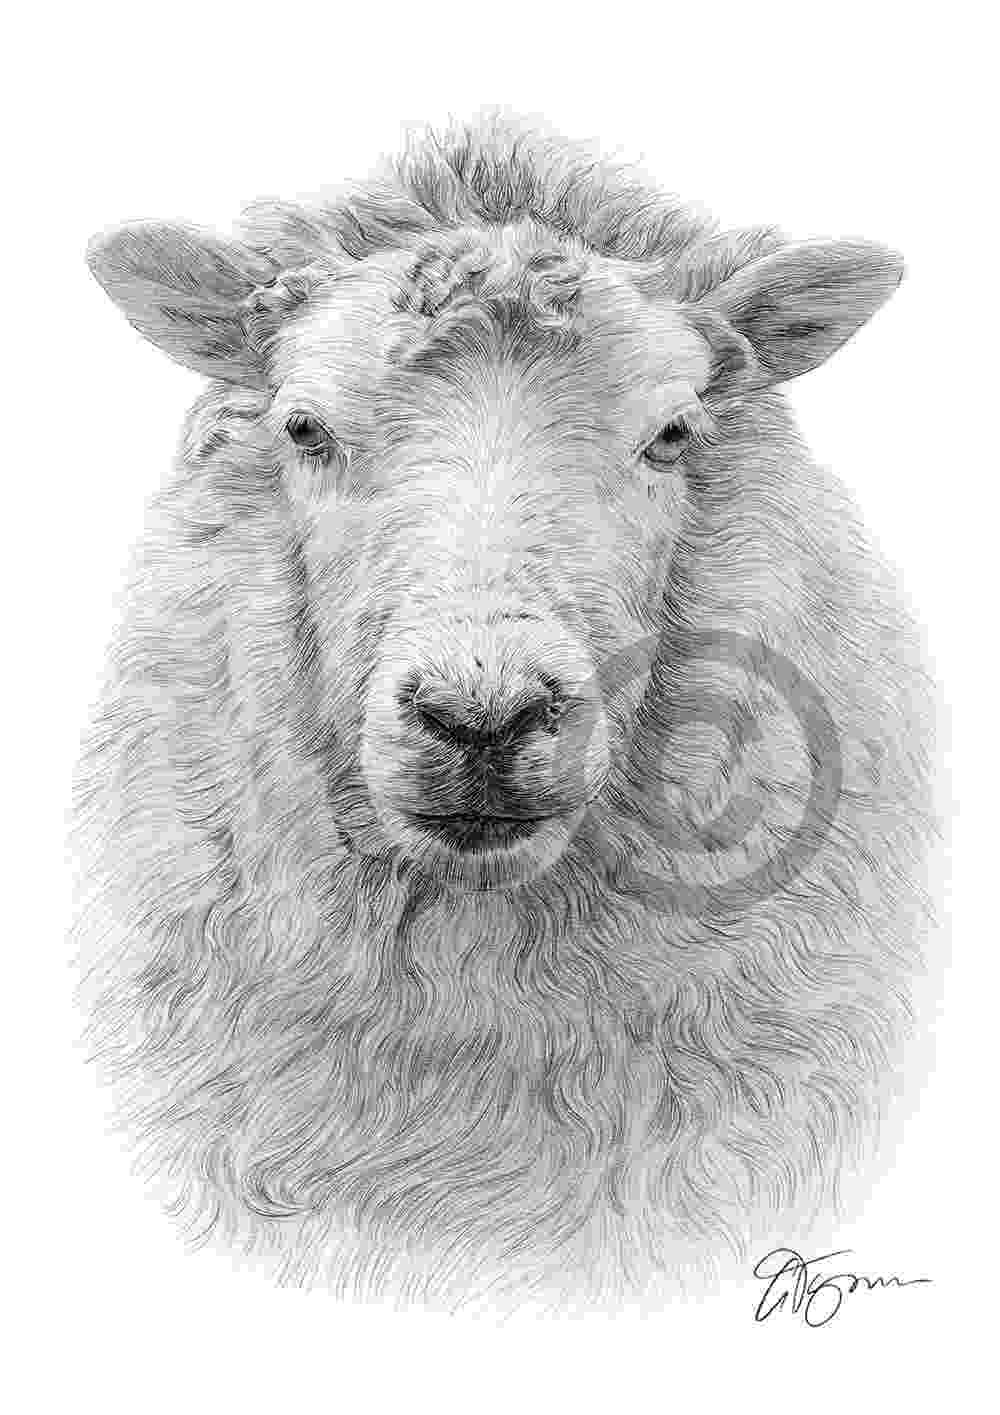 sketch of sheep sheep pencil graphite print a4 a3 signed by artist sketch of sheep